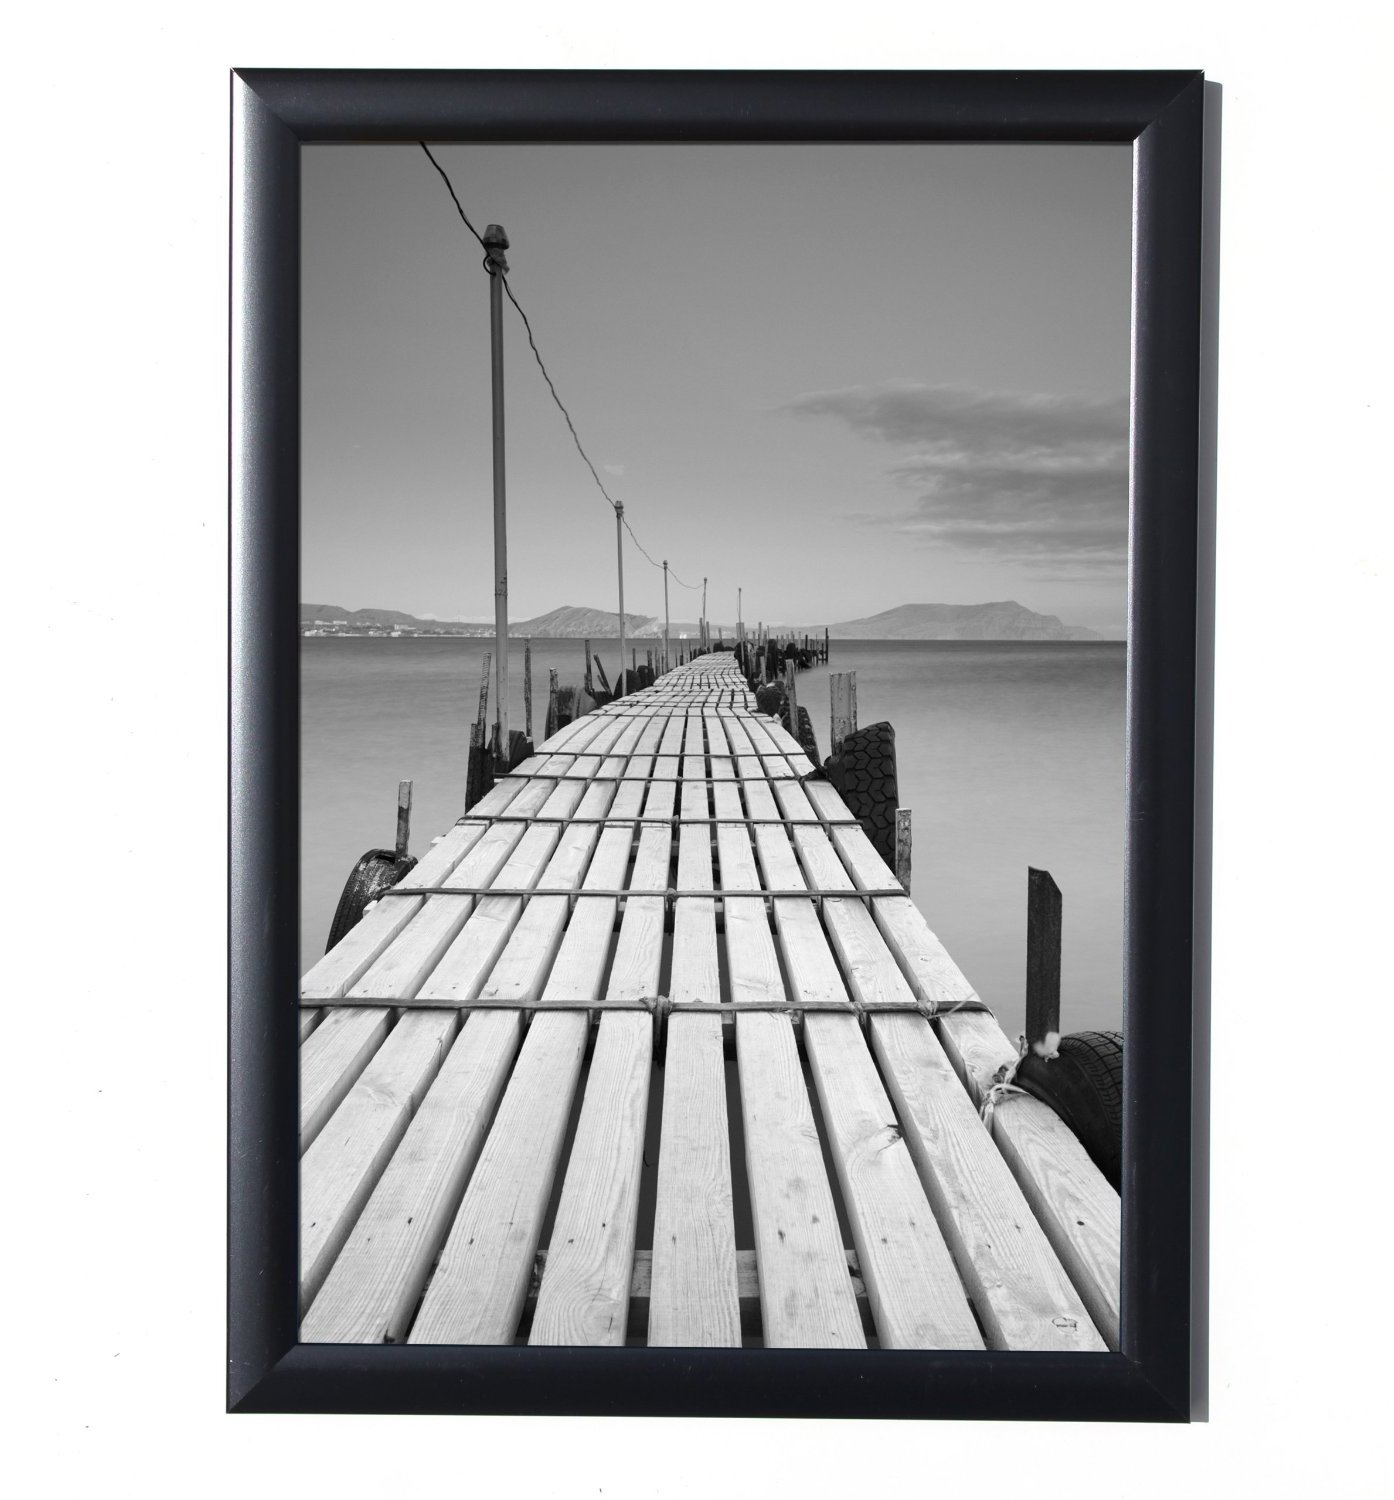 Anker A4 Certificate Photo/Picture Frame, Classic Black, 21 x 29.7 cm Z-ANBLDM/1